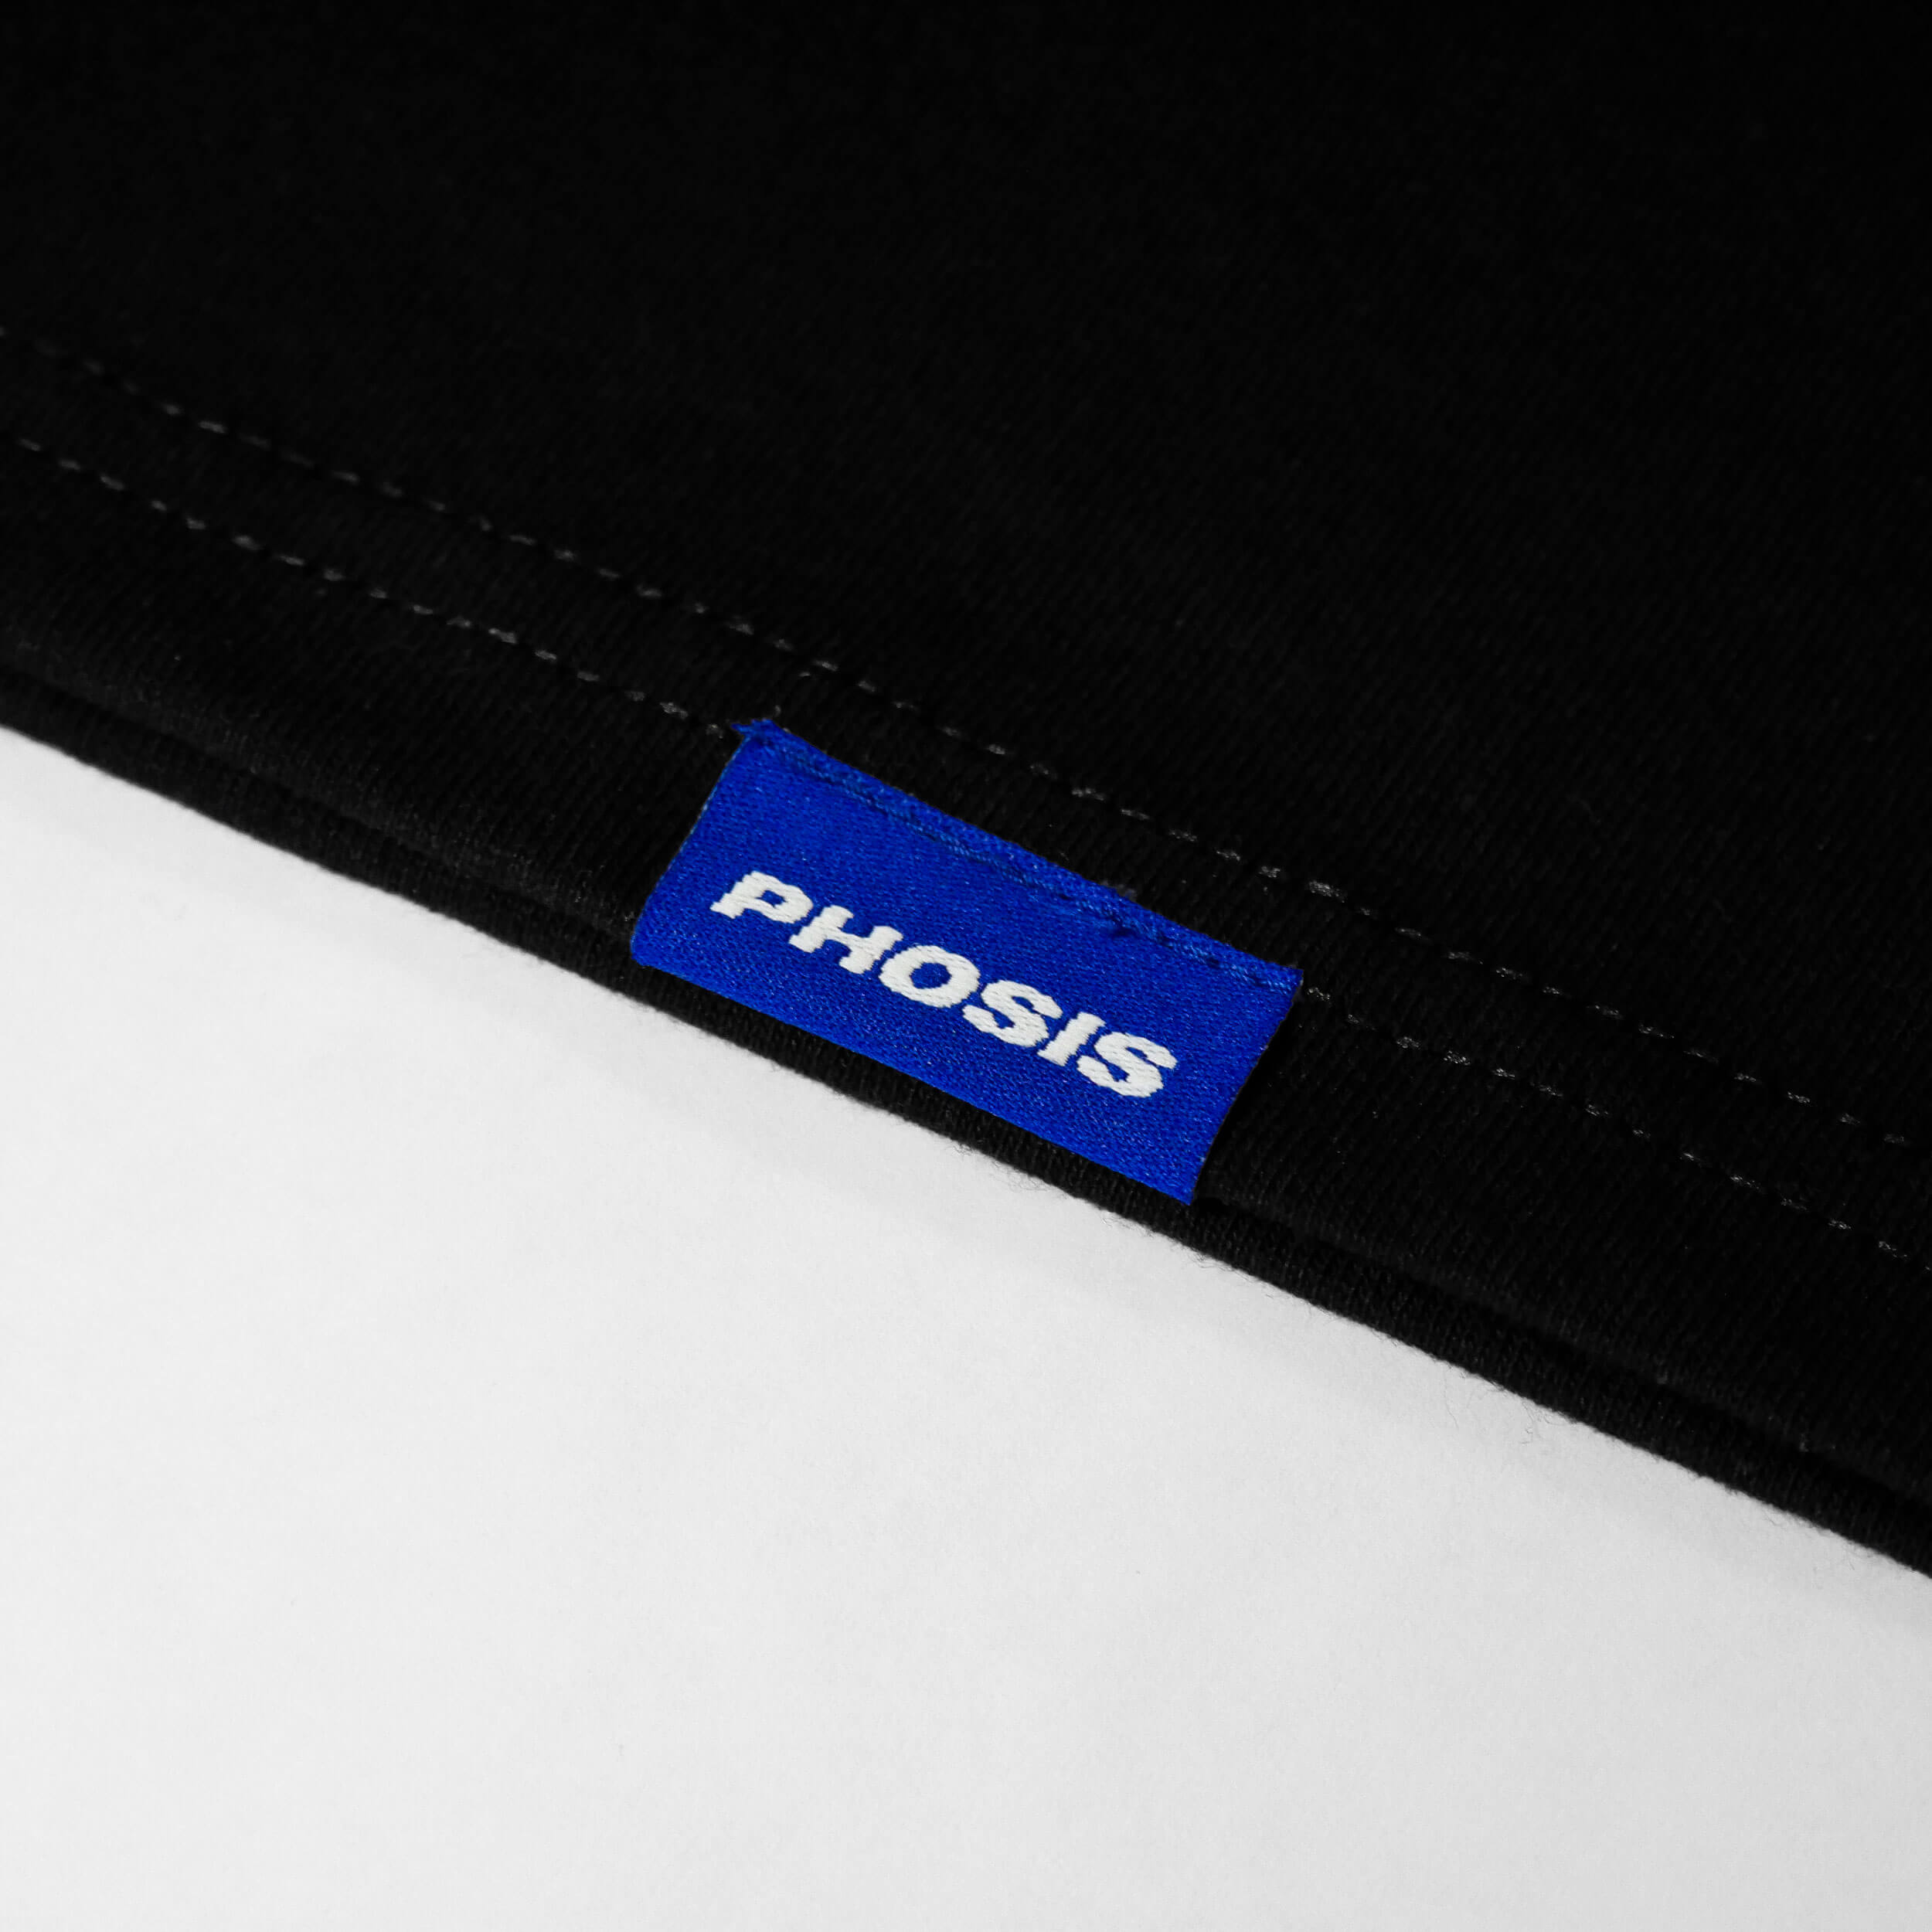 Close up view of the blue woven label in the 'MARIPXSA' BALISONG CLUB black t-shirt from PHOSIS Clothing